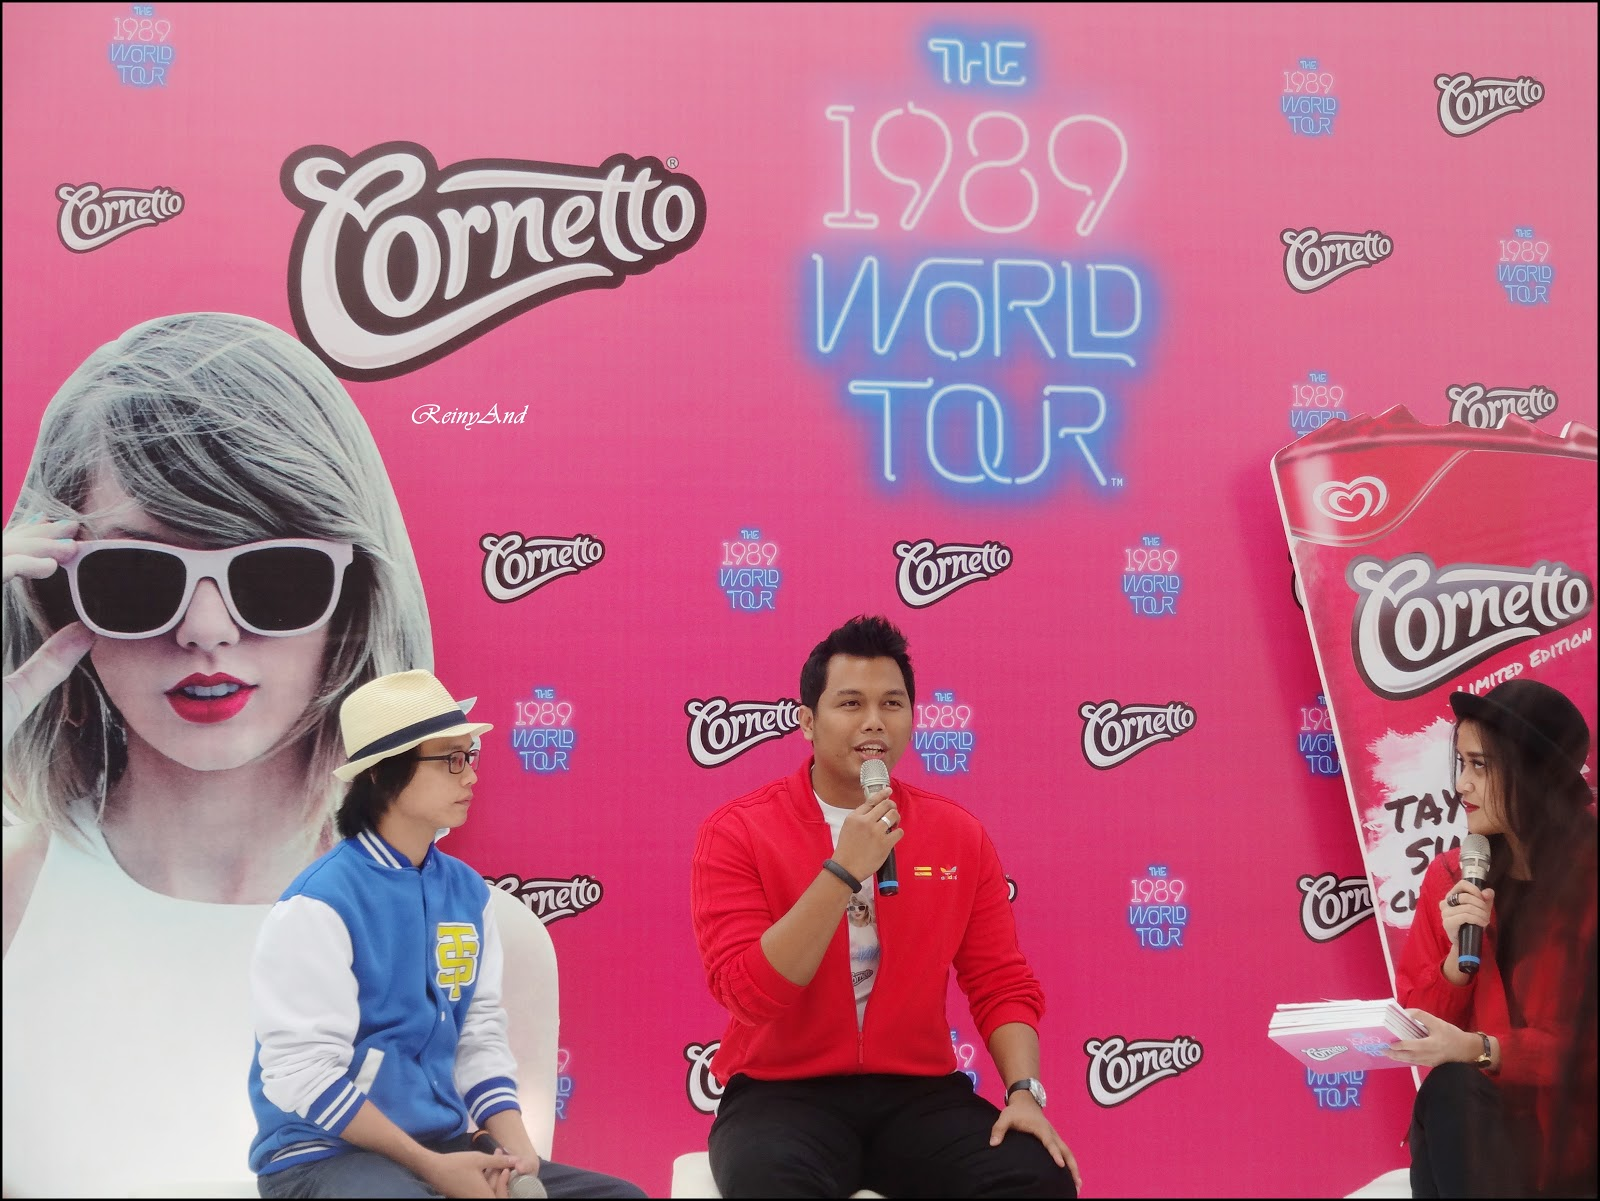 walls cornetto report Cornetto meaning little horn in italian, is a branded frozen dessert cone  manufactured by unilever and sold under various international subsidiary names , including algida in italy, wall's in the uk, hb in ireland, frigo in spain, kwality  wall's in india,.